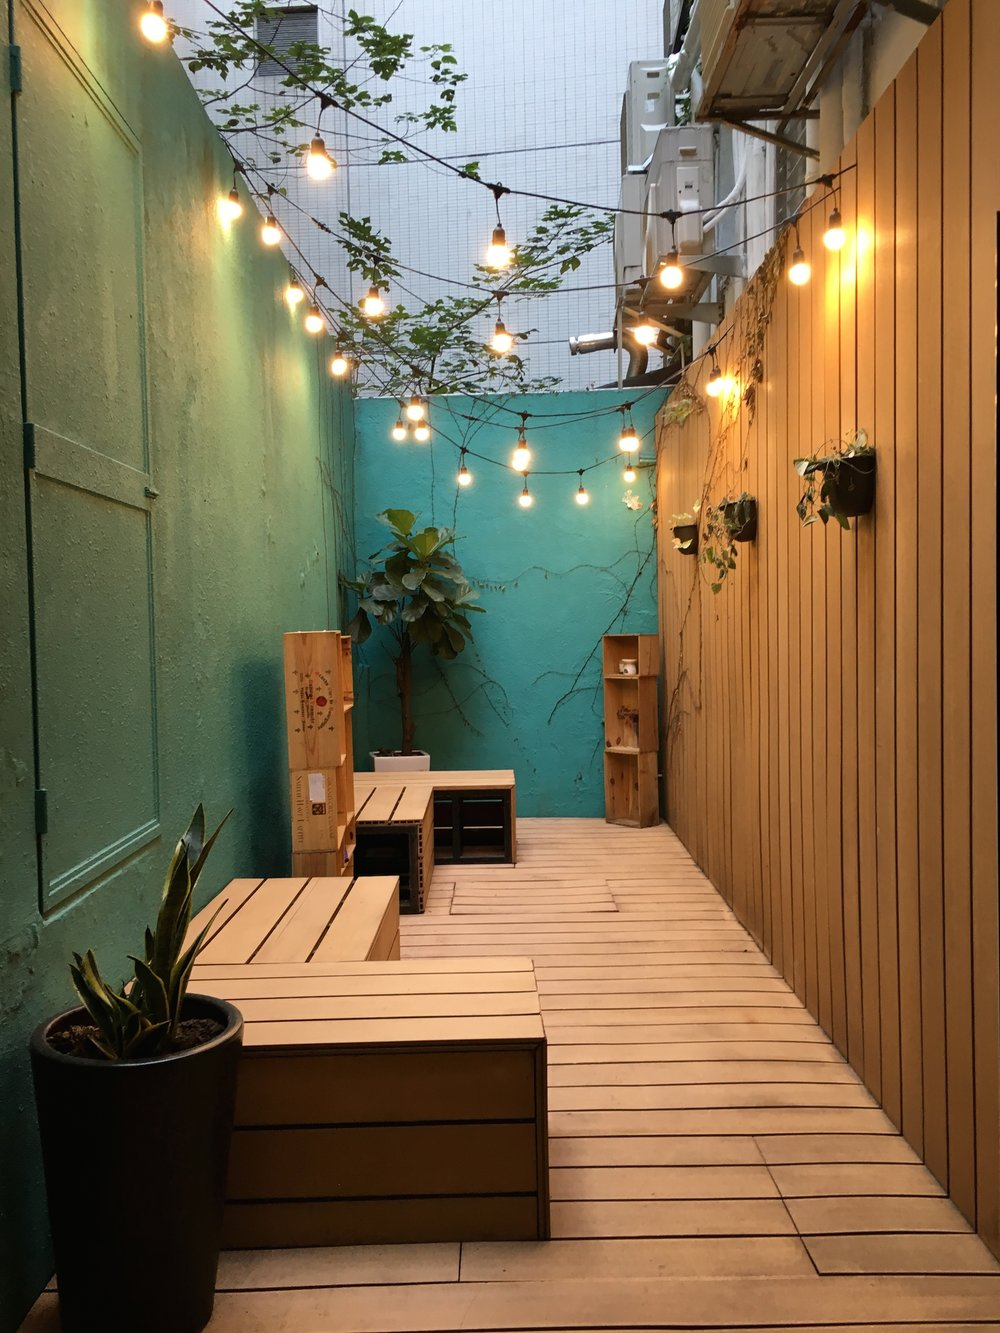 WELLNESS GARDEN W FAIRY LIGHTS.JPG